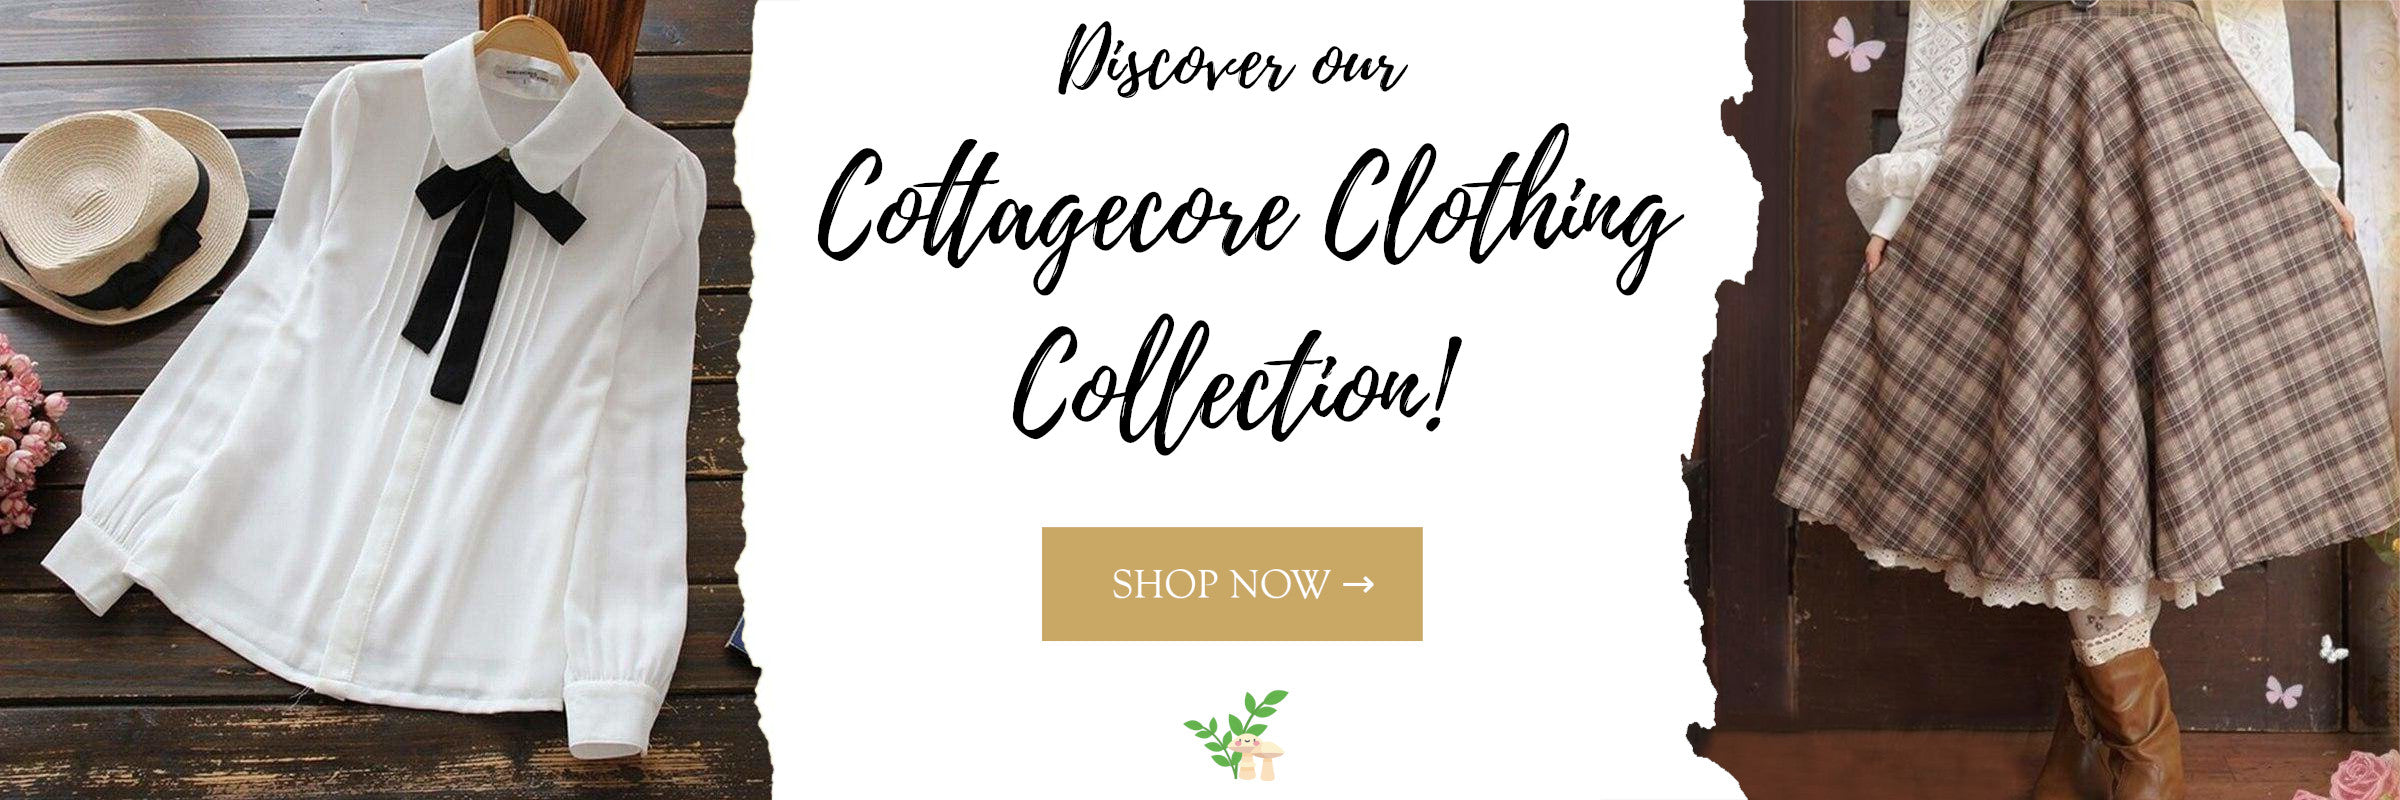 cottagecore clothing collection